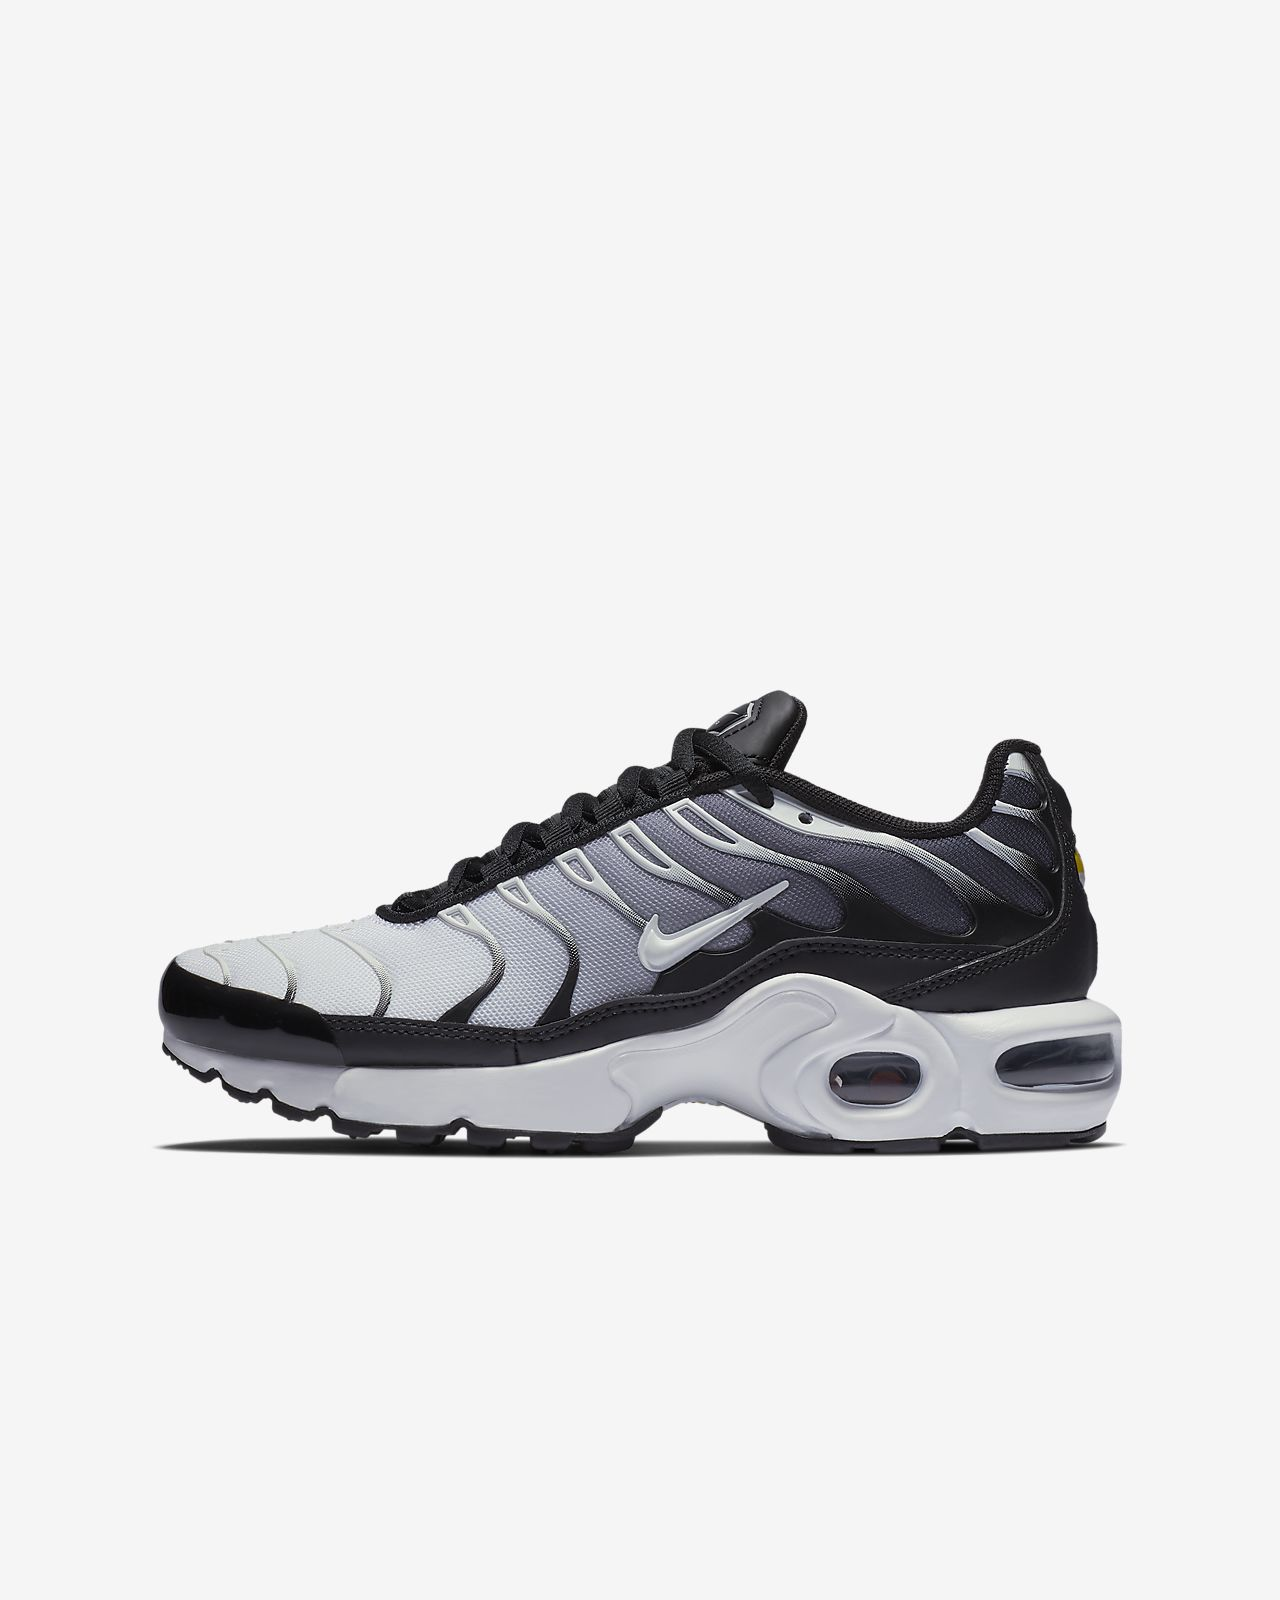 2bd2c697d3 Nike Air Max Plus Older Kids' Shoe. Nike.com GB